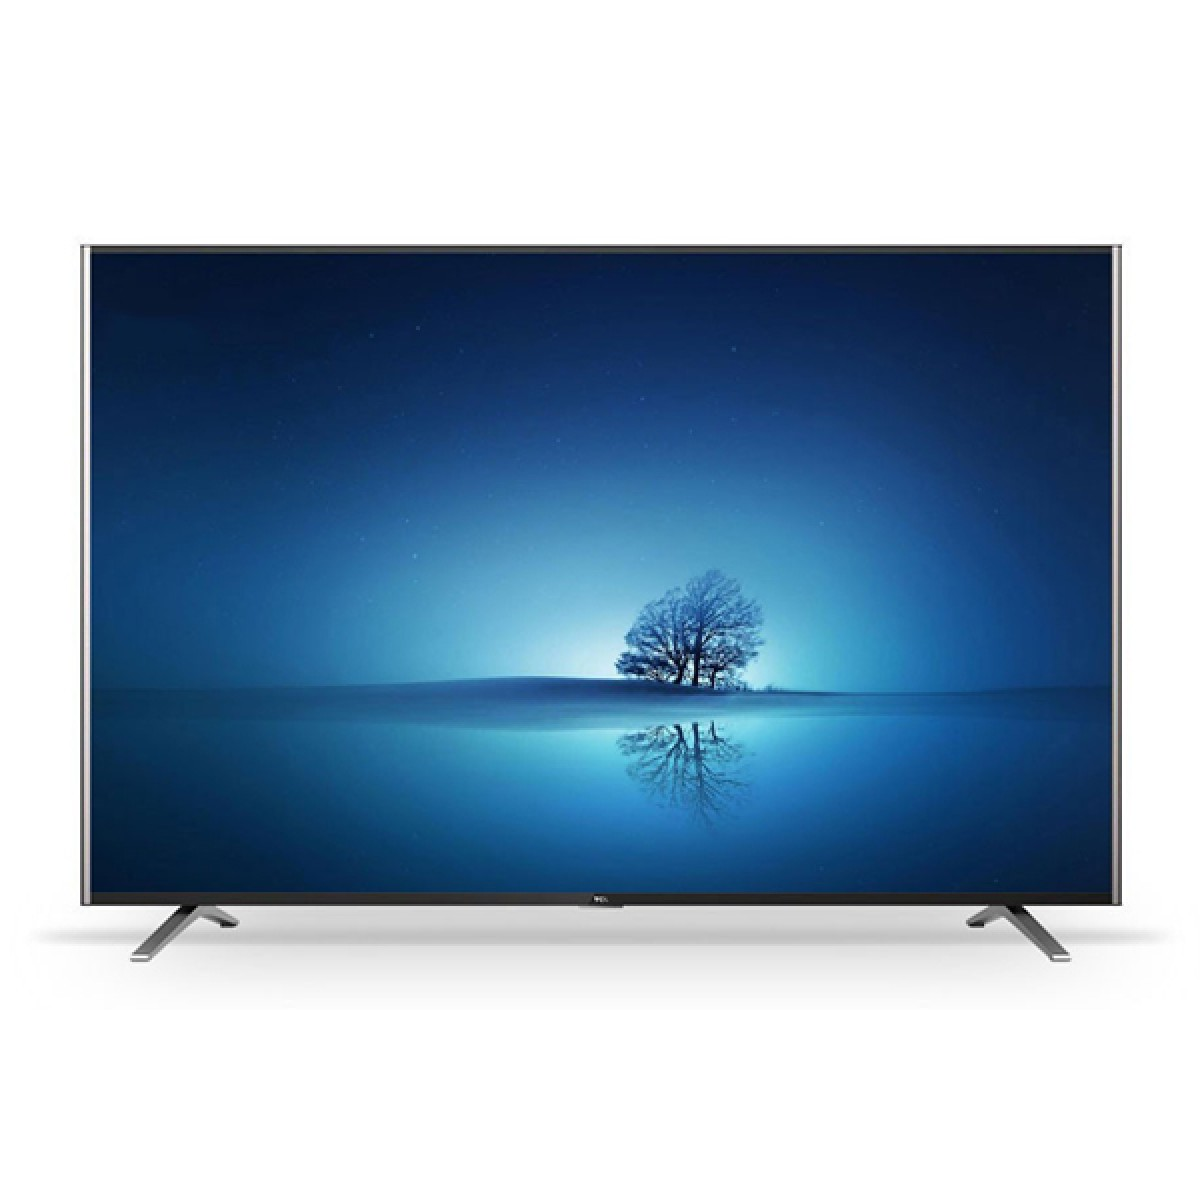 Tcl 43 Inch 4k Uhd Led Smart Tv L43p2us Price In India